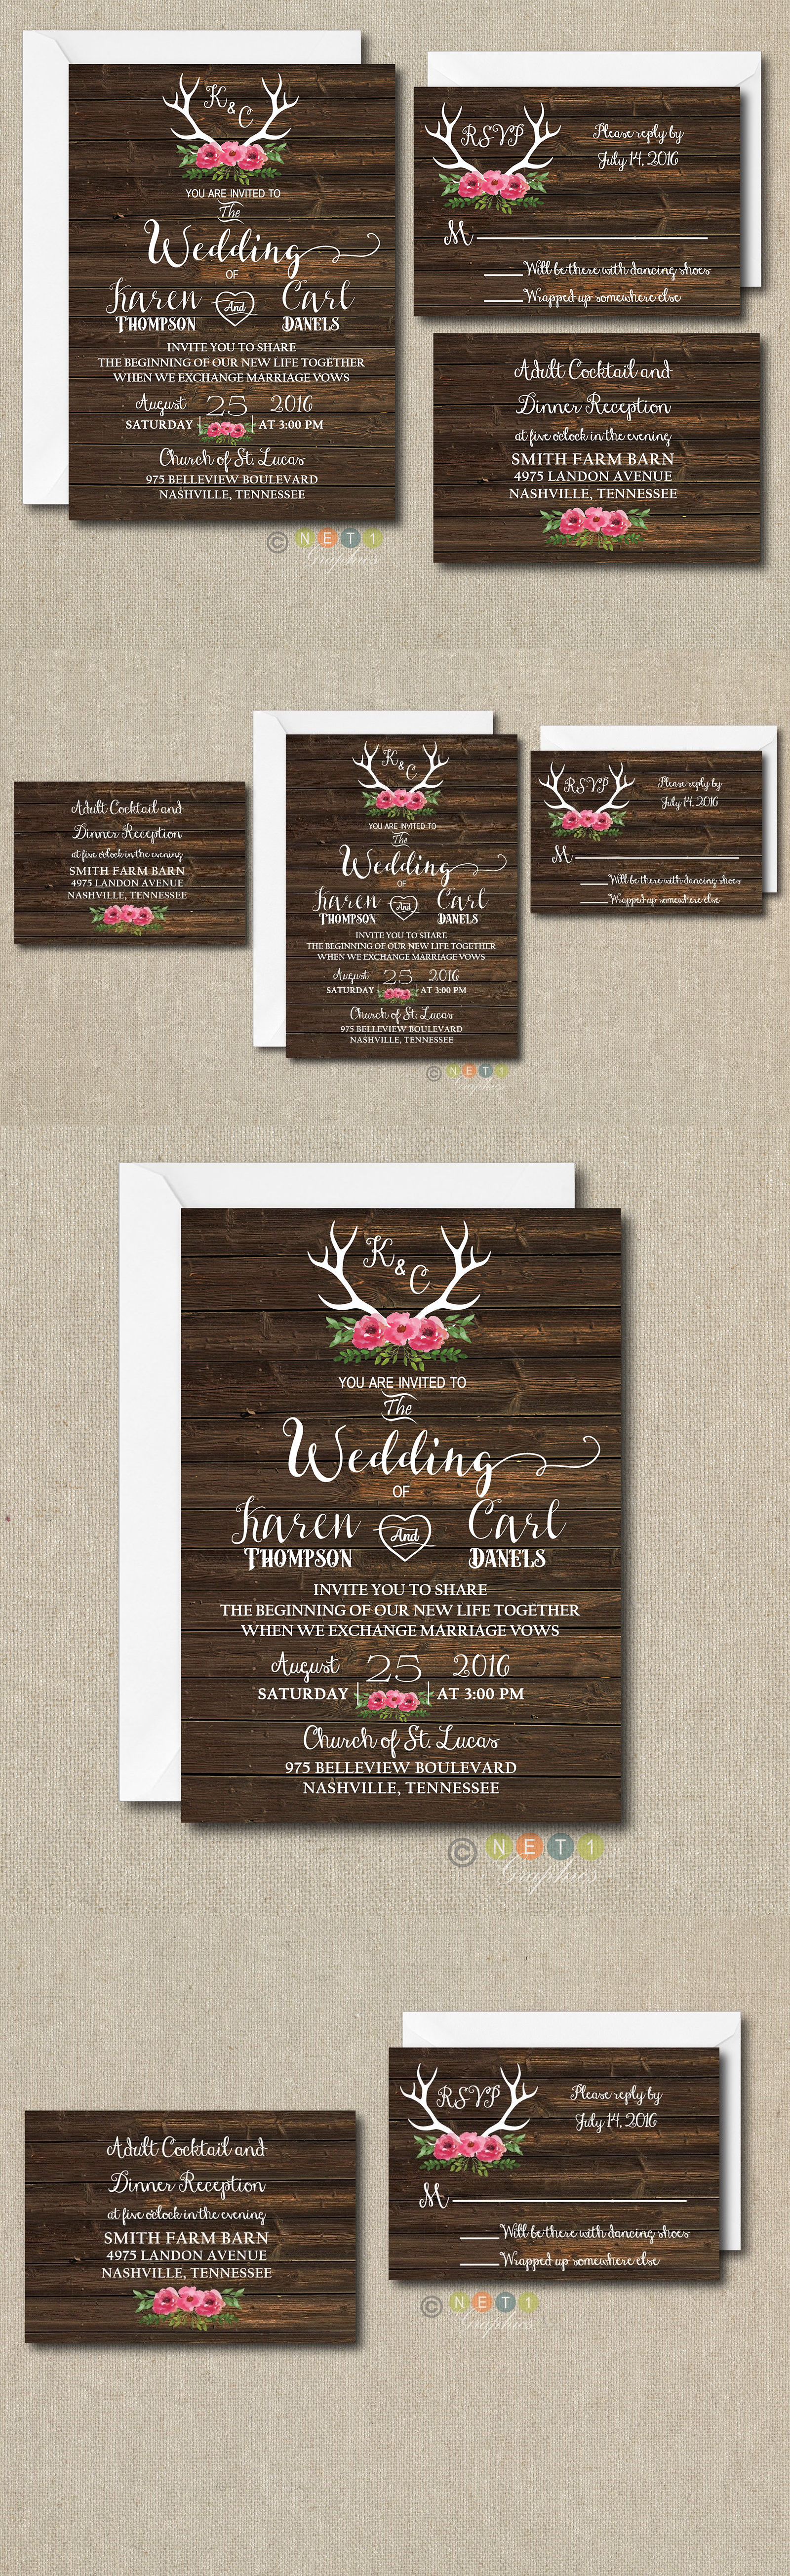 Invitations And Stationery 102469 100 Floral Rustic Antler Wedding